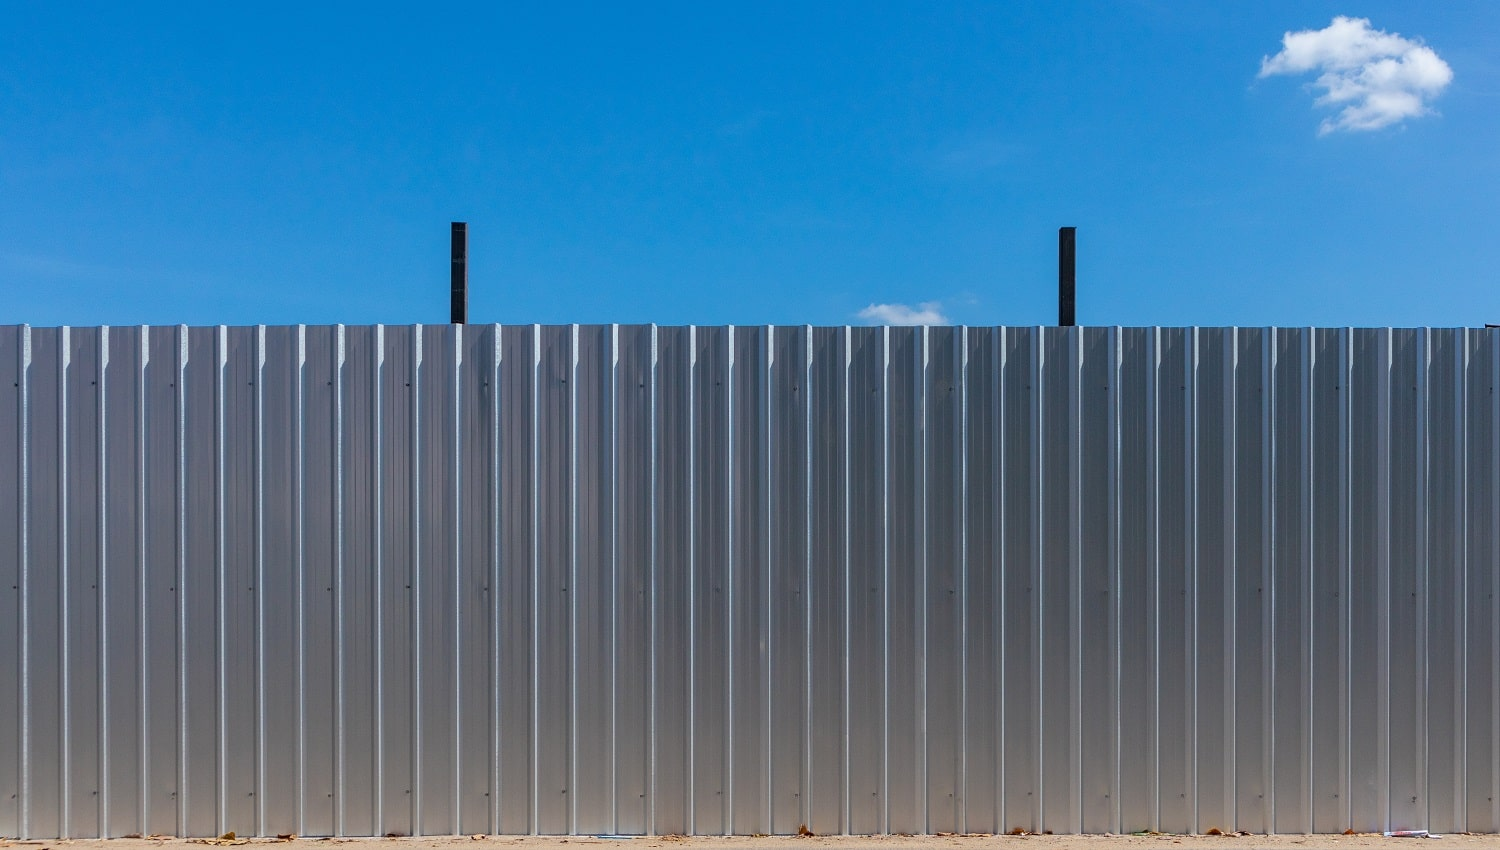 Clean aluminium fence to protect construction area.